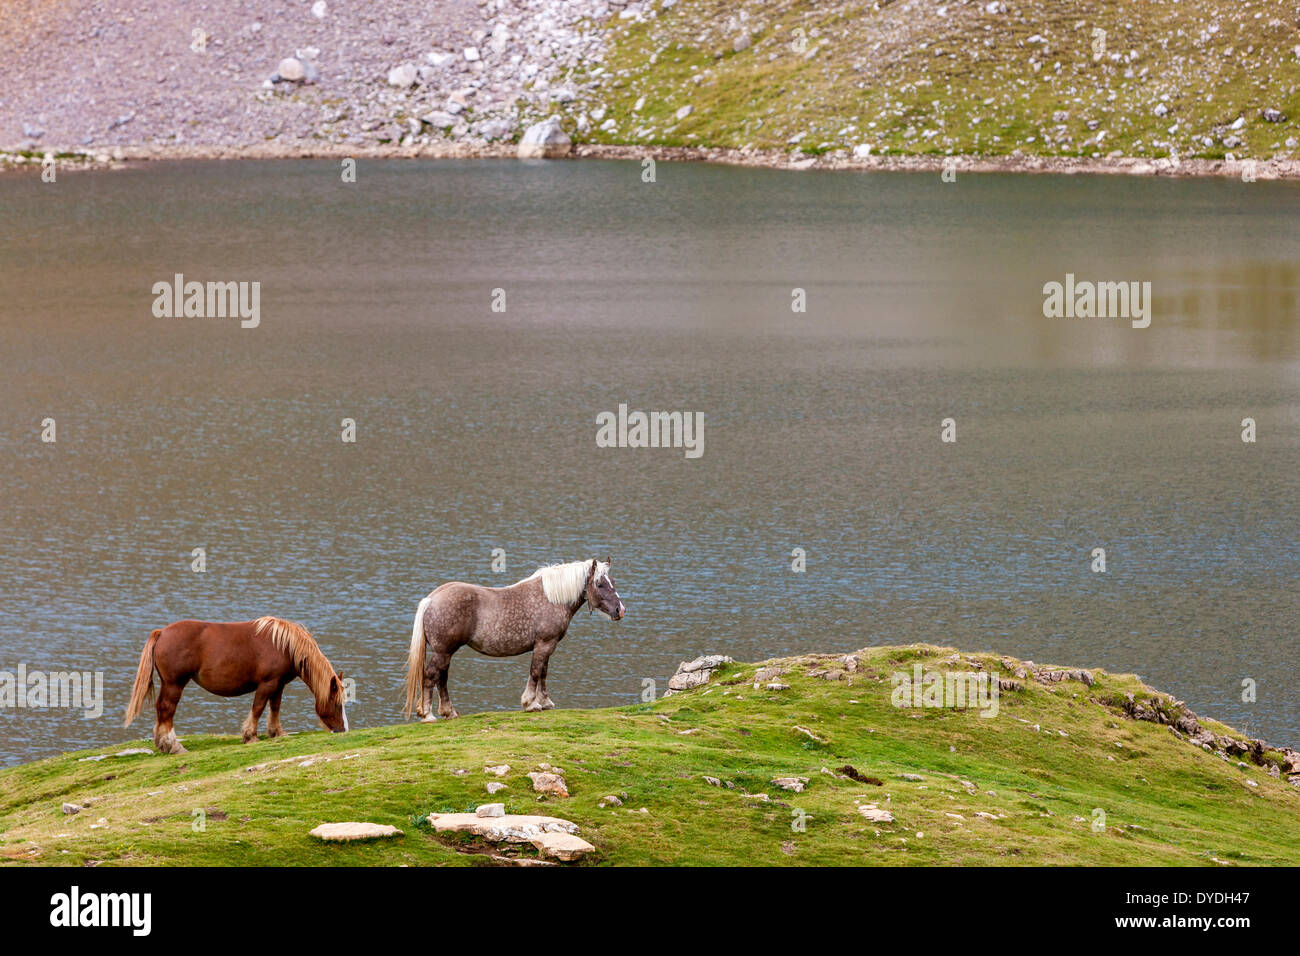 Horses grazing on the shore Ibon de Asnos in the Sierra de TendeÕ±era in the Pyrenees. - Stock Image